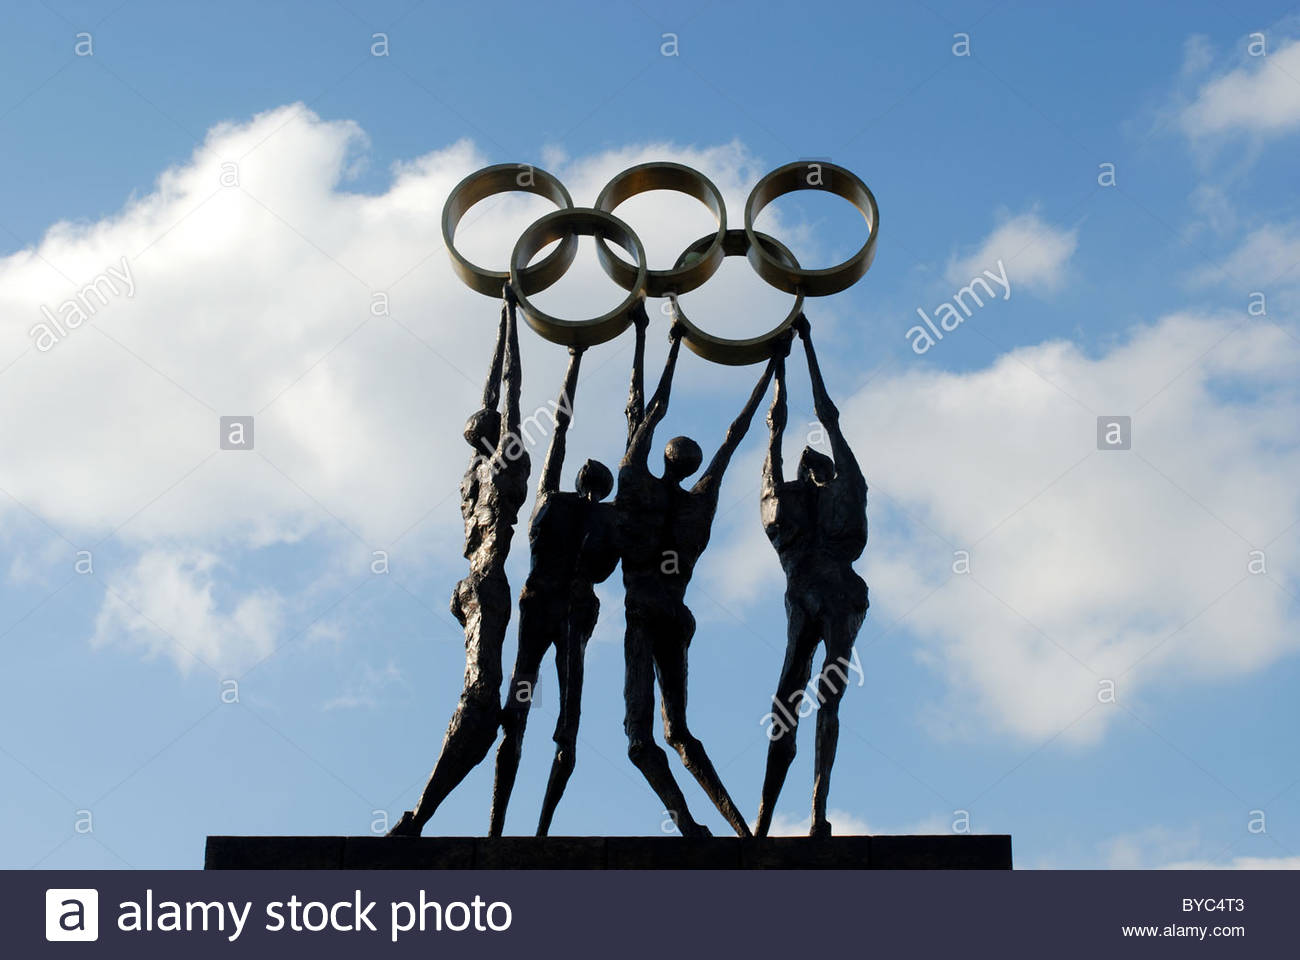 General - Olympic presence in Lausanne Switzerland. Statue in front of the IOC buildings in Vidy. - Stock Image